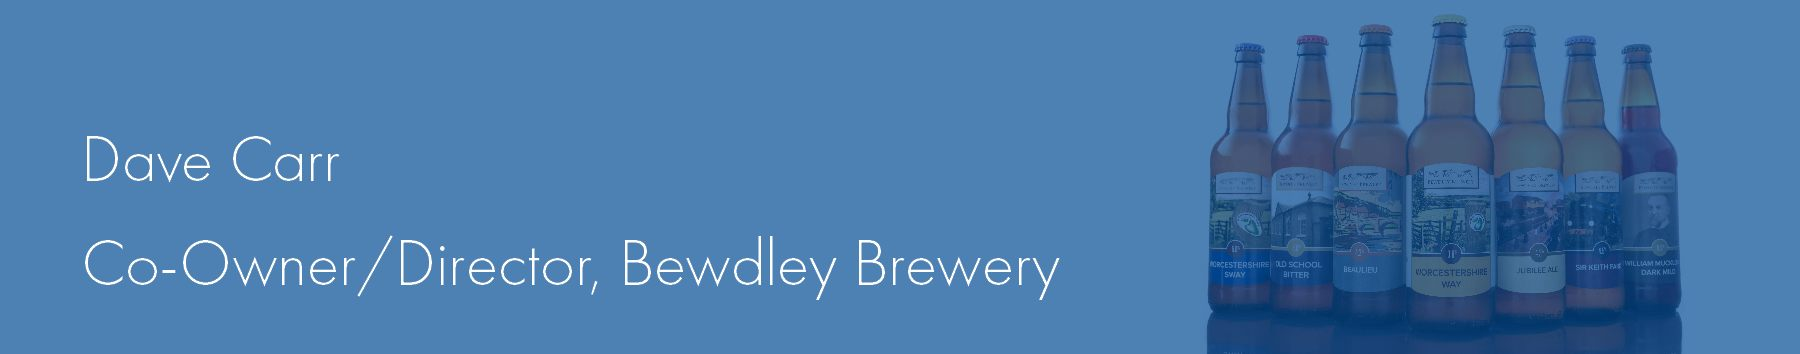 COMMERCIAL Photography Testimonial - Bewdley Brewery